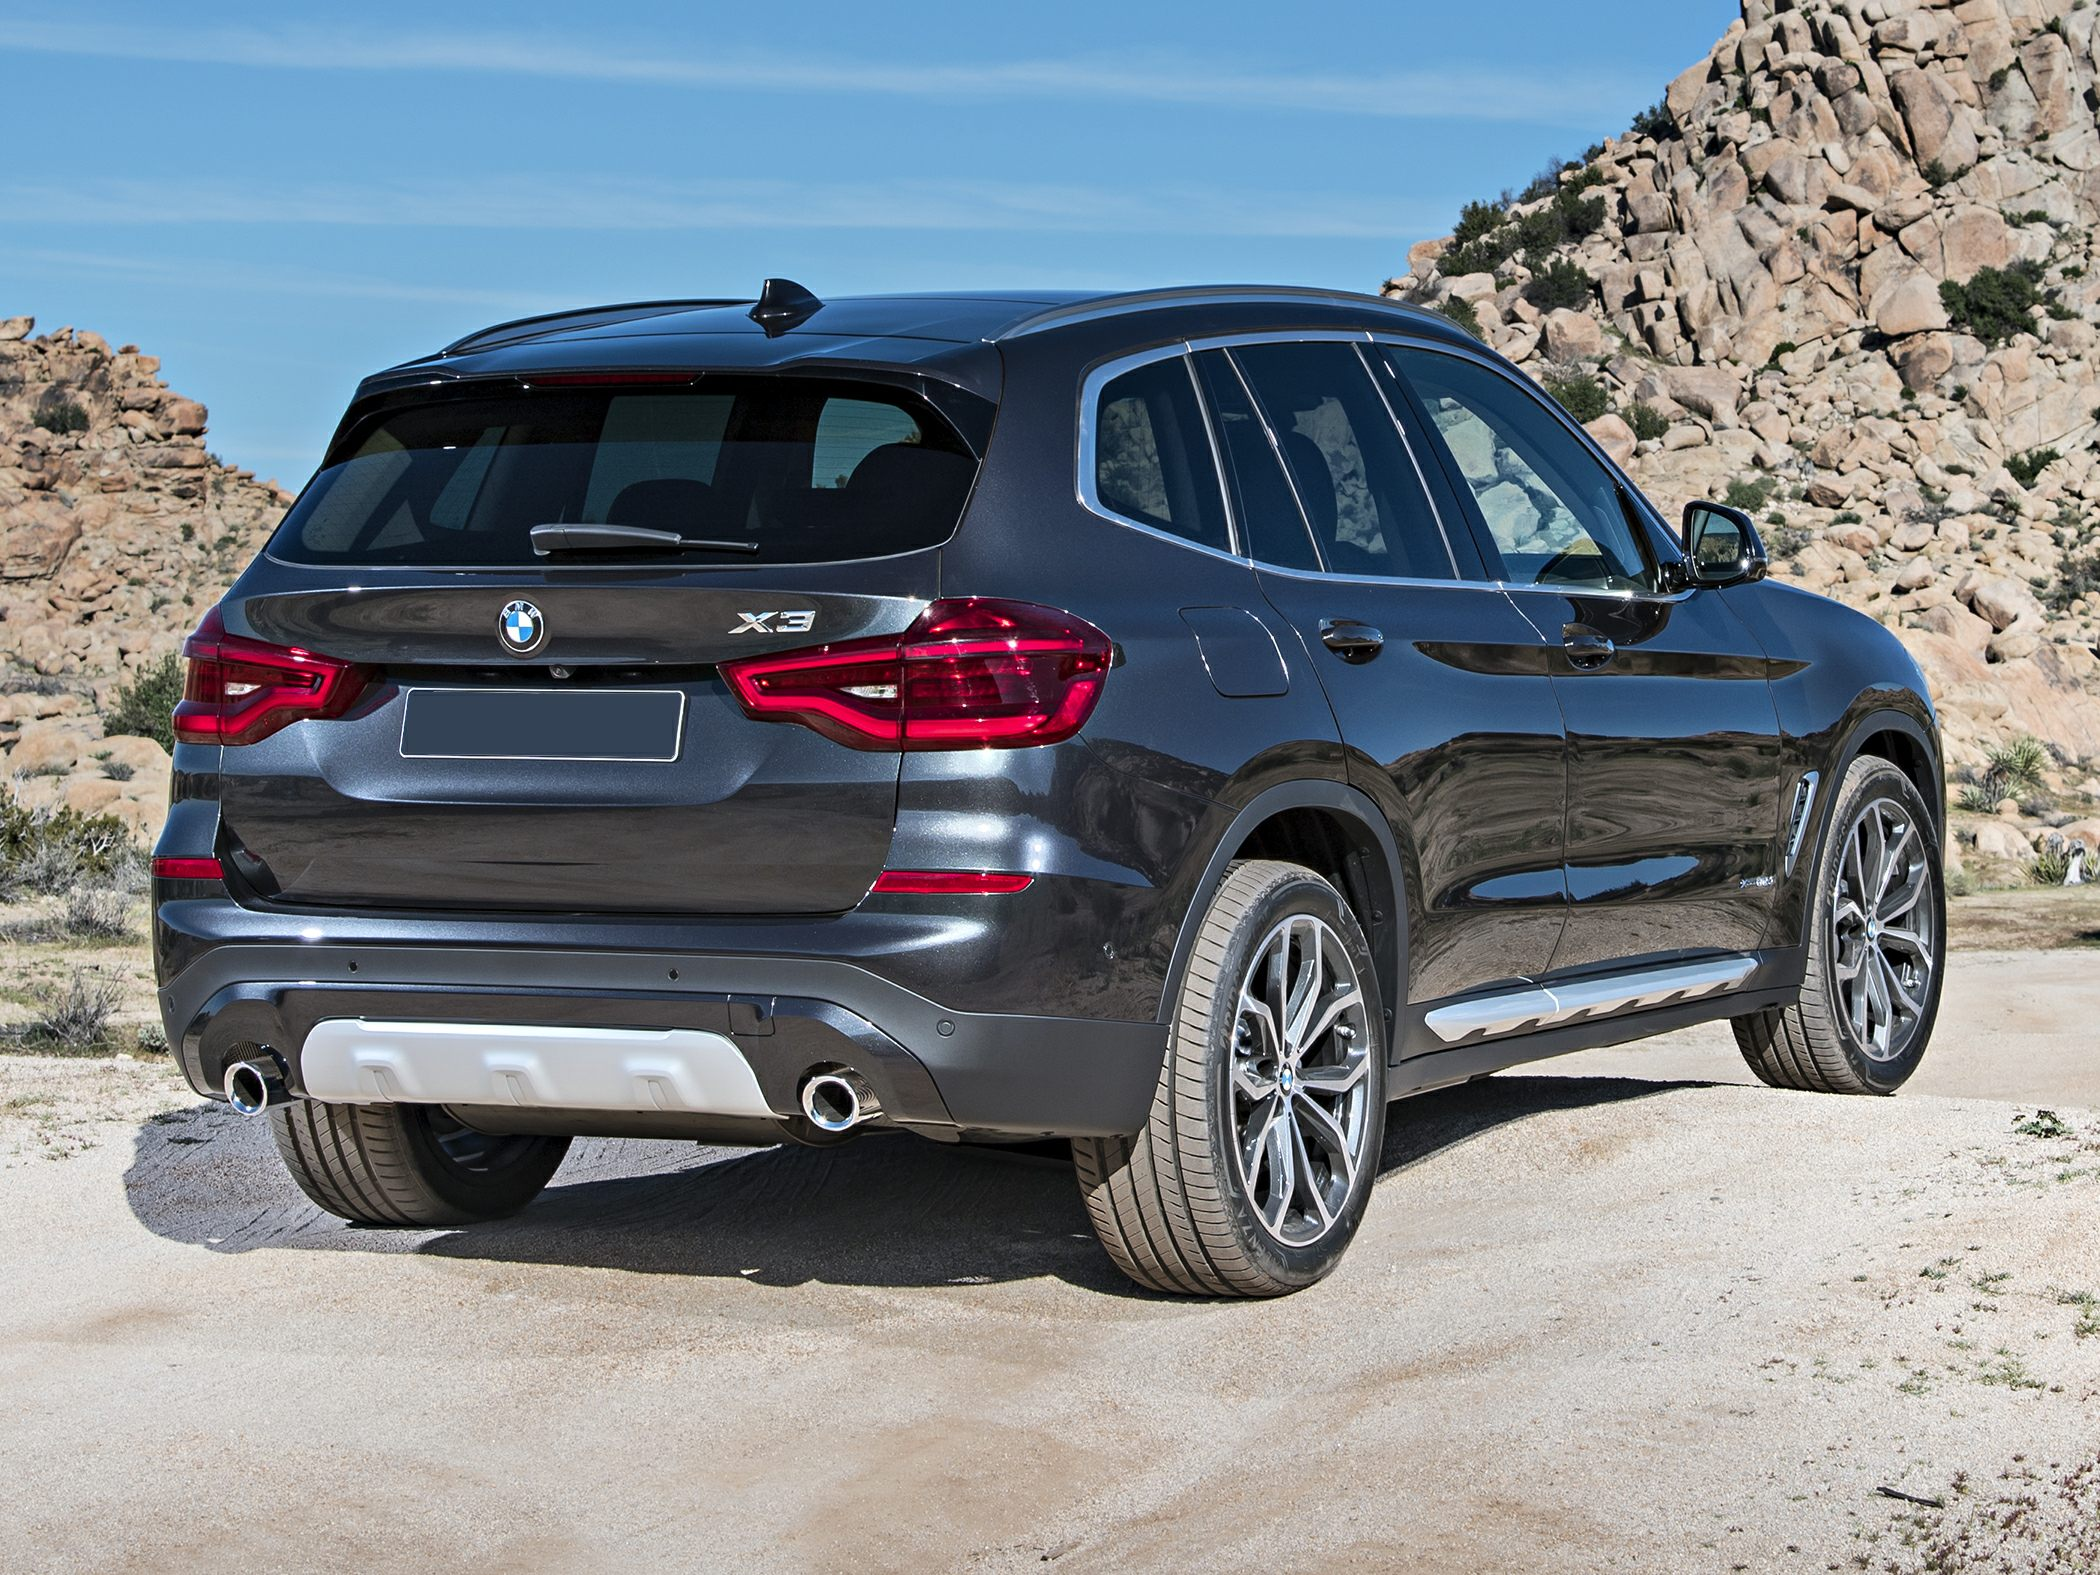 Buick Lease Deals >> See 2018 BMW X3 Color Options - CarsDirect